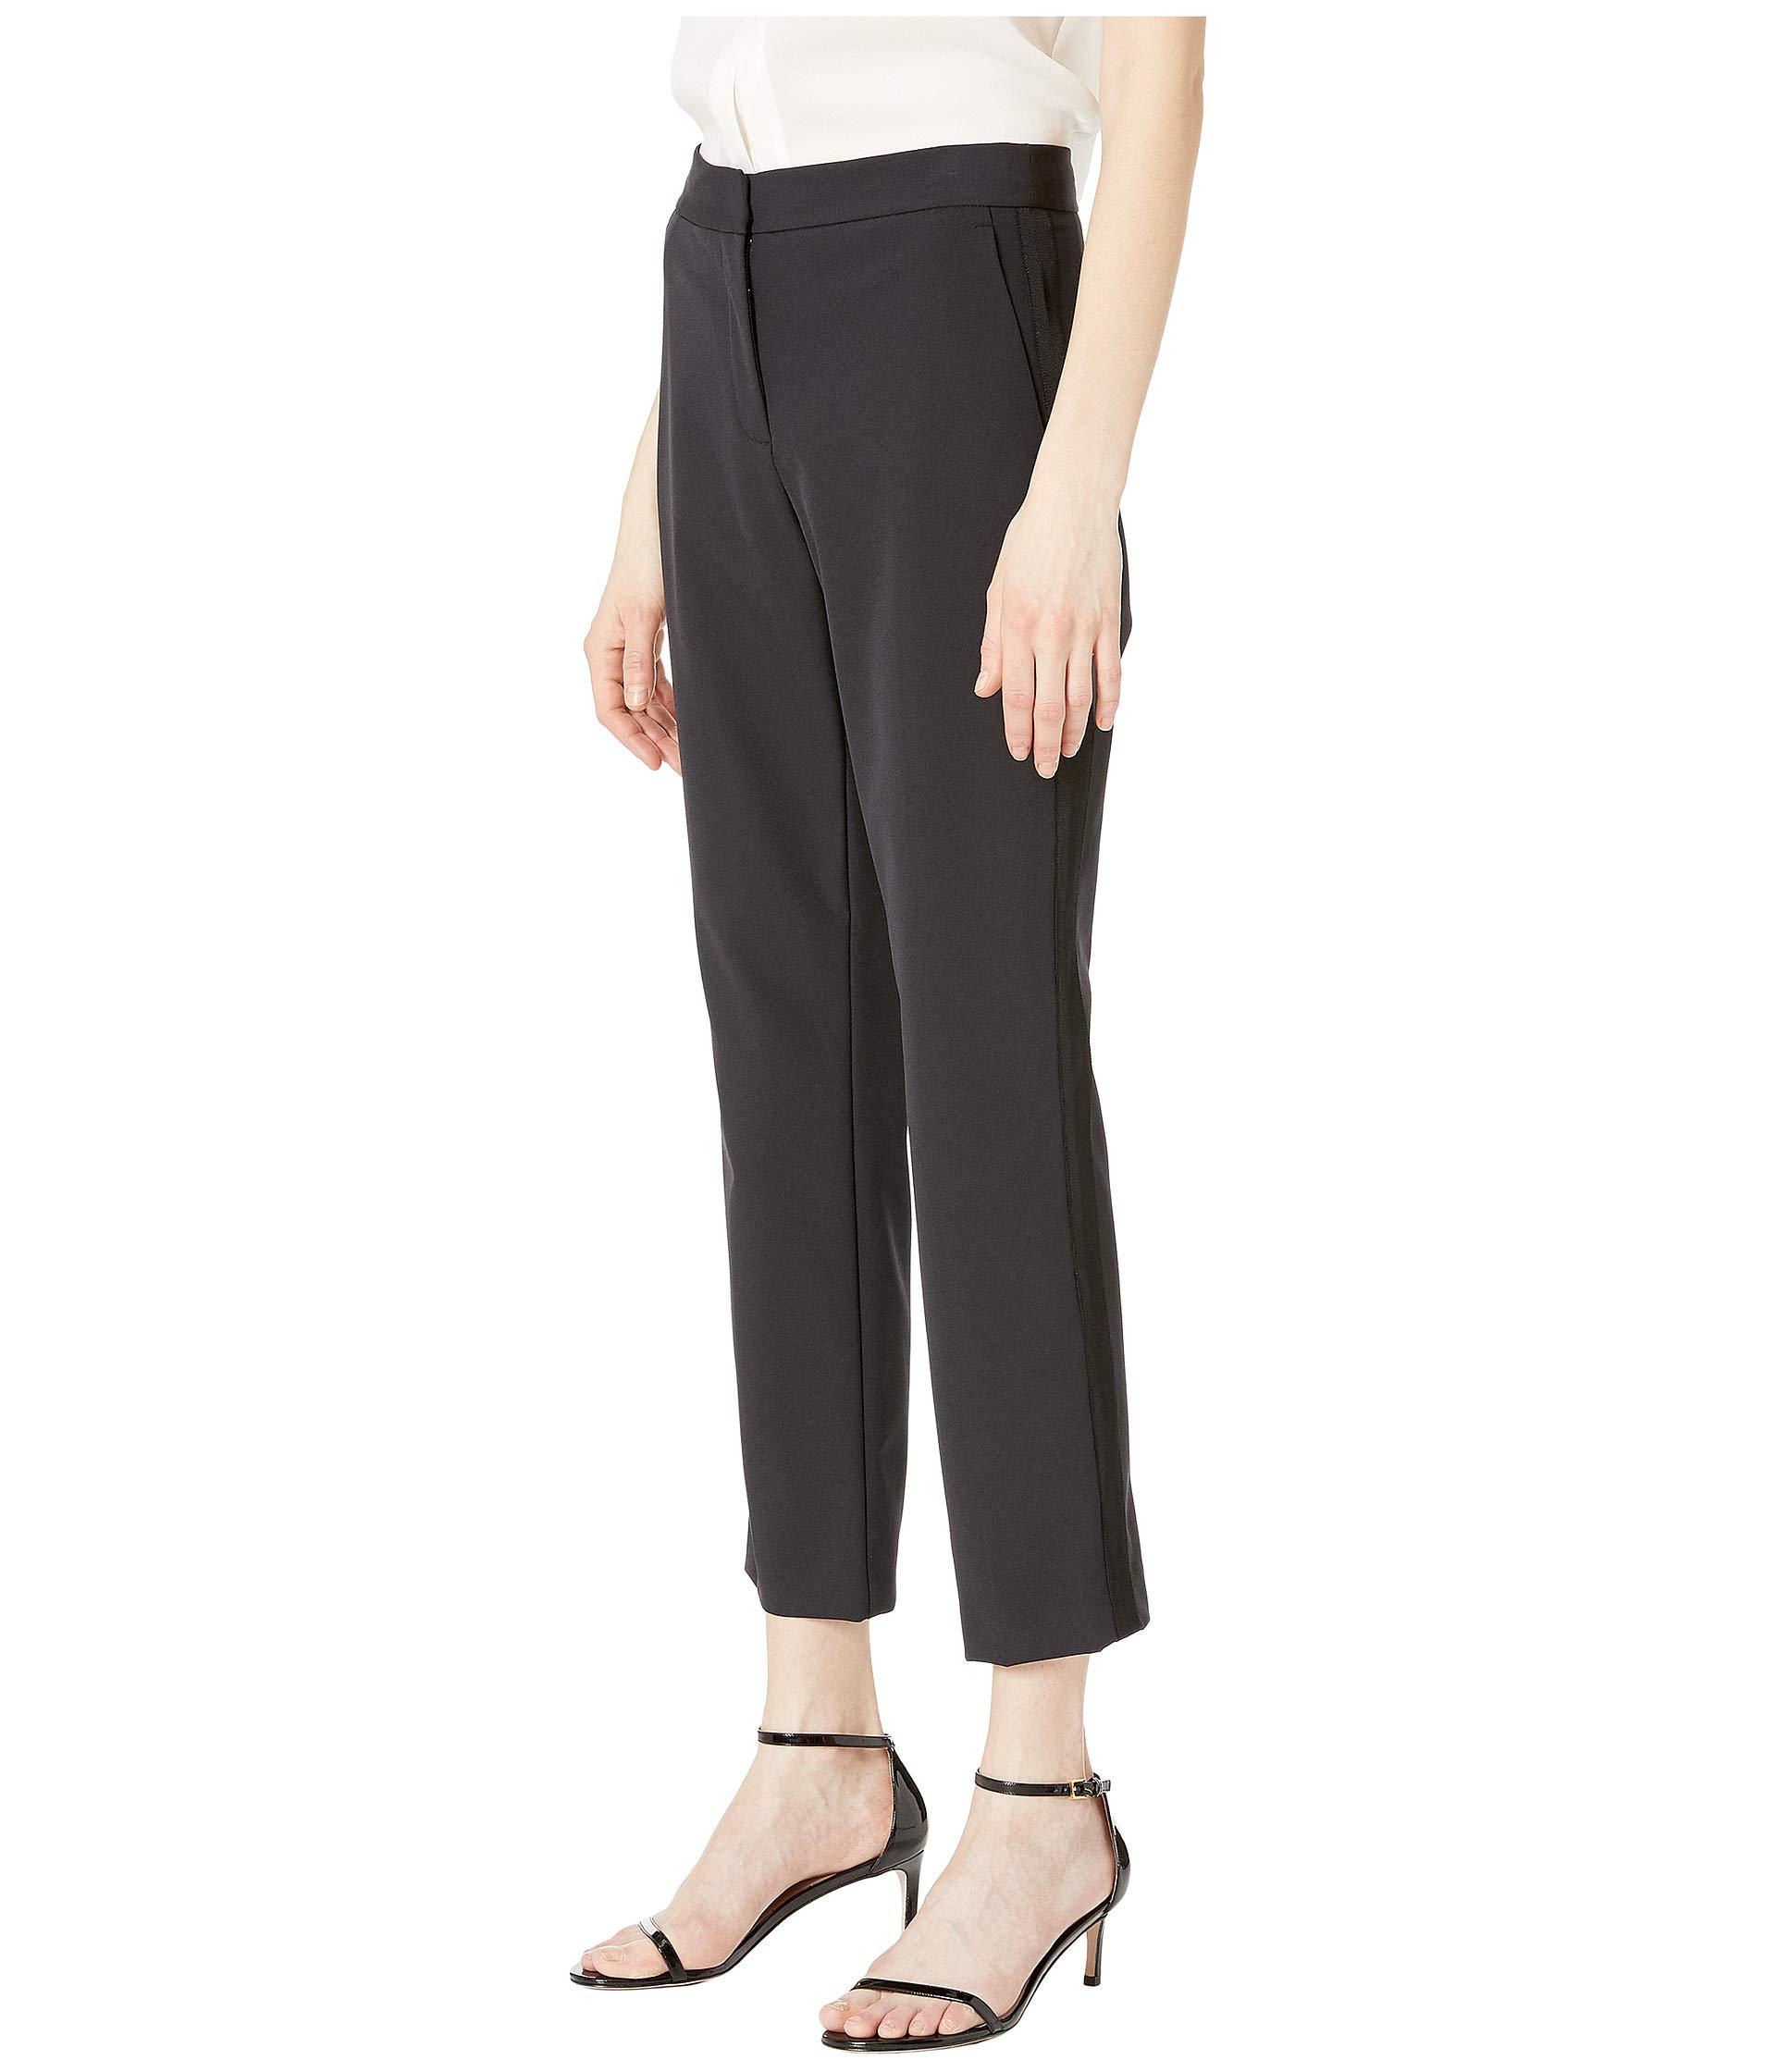 463a3aa6c6cd05 Lyst - Rebecca Taylor Audra Pants (black) Women's Casual Pants in Black